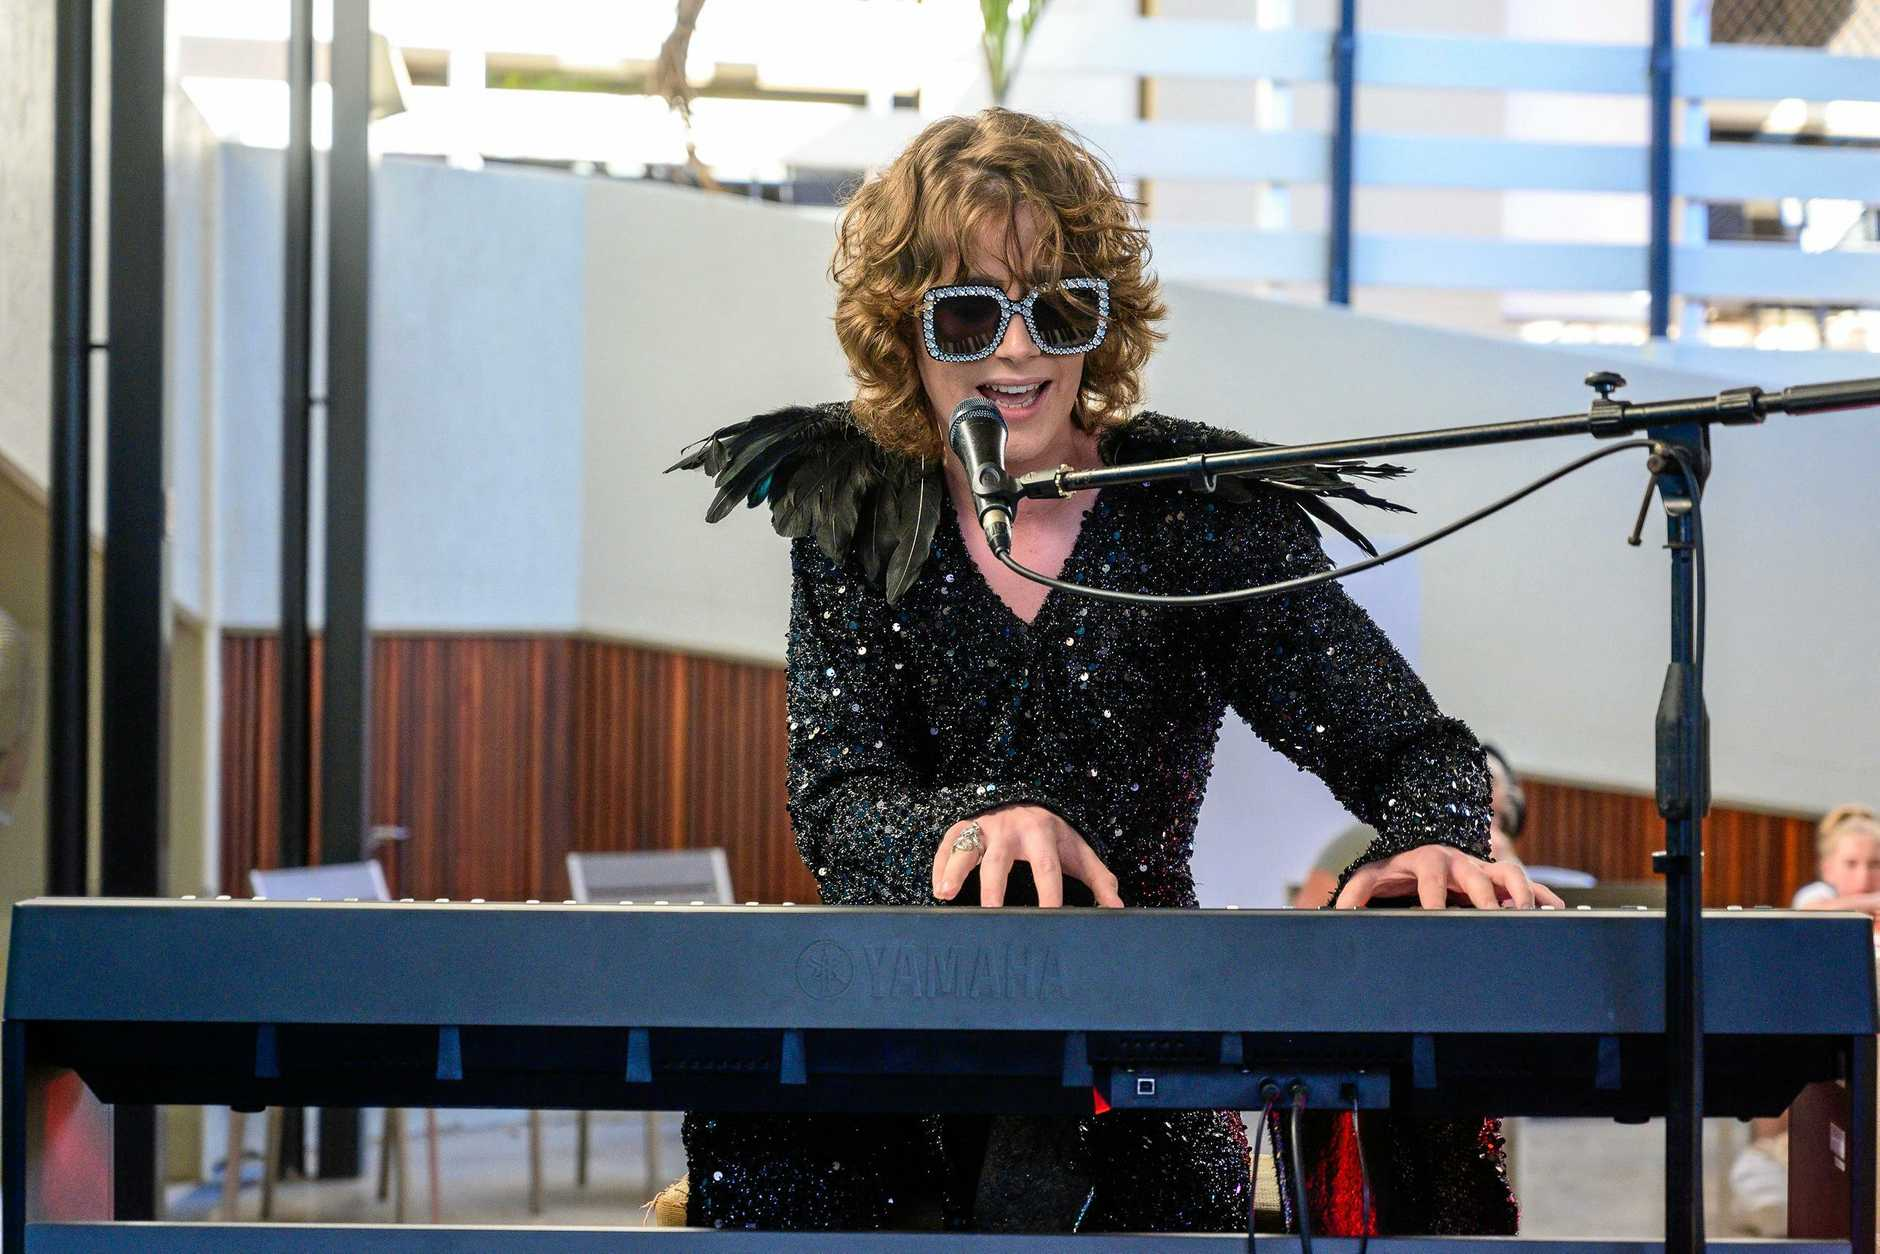 William Kelly performed his heart out on the piano during the Young Whitsundays Got Talent grand final, where he was later crowned the winner.